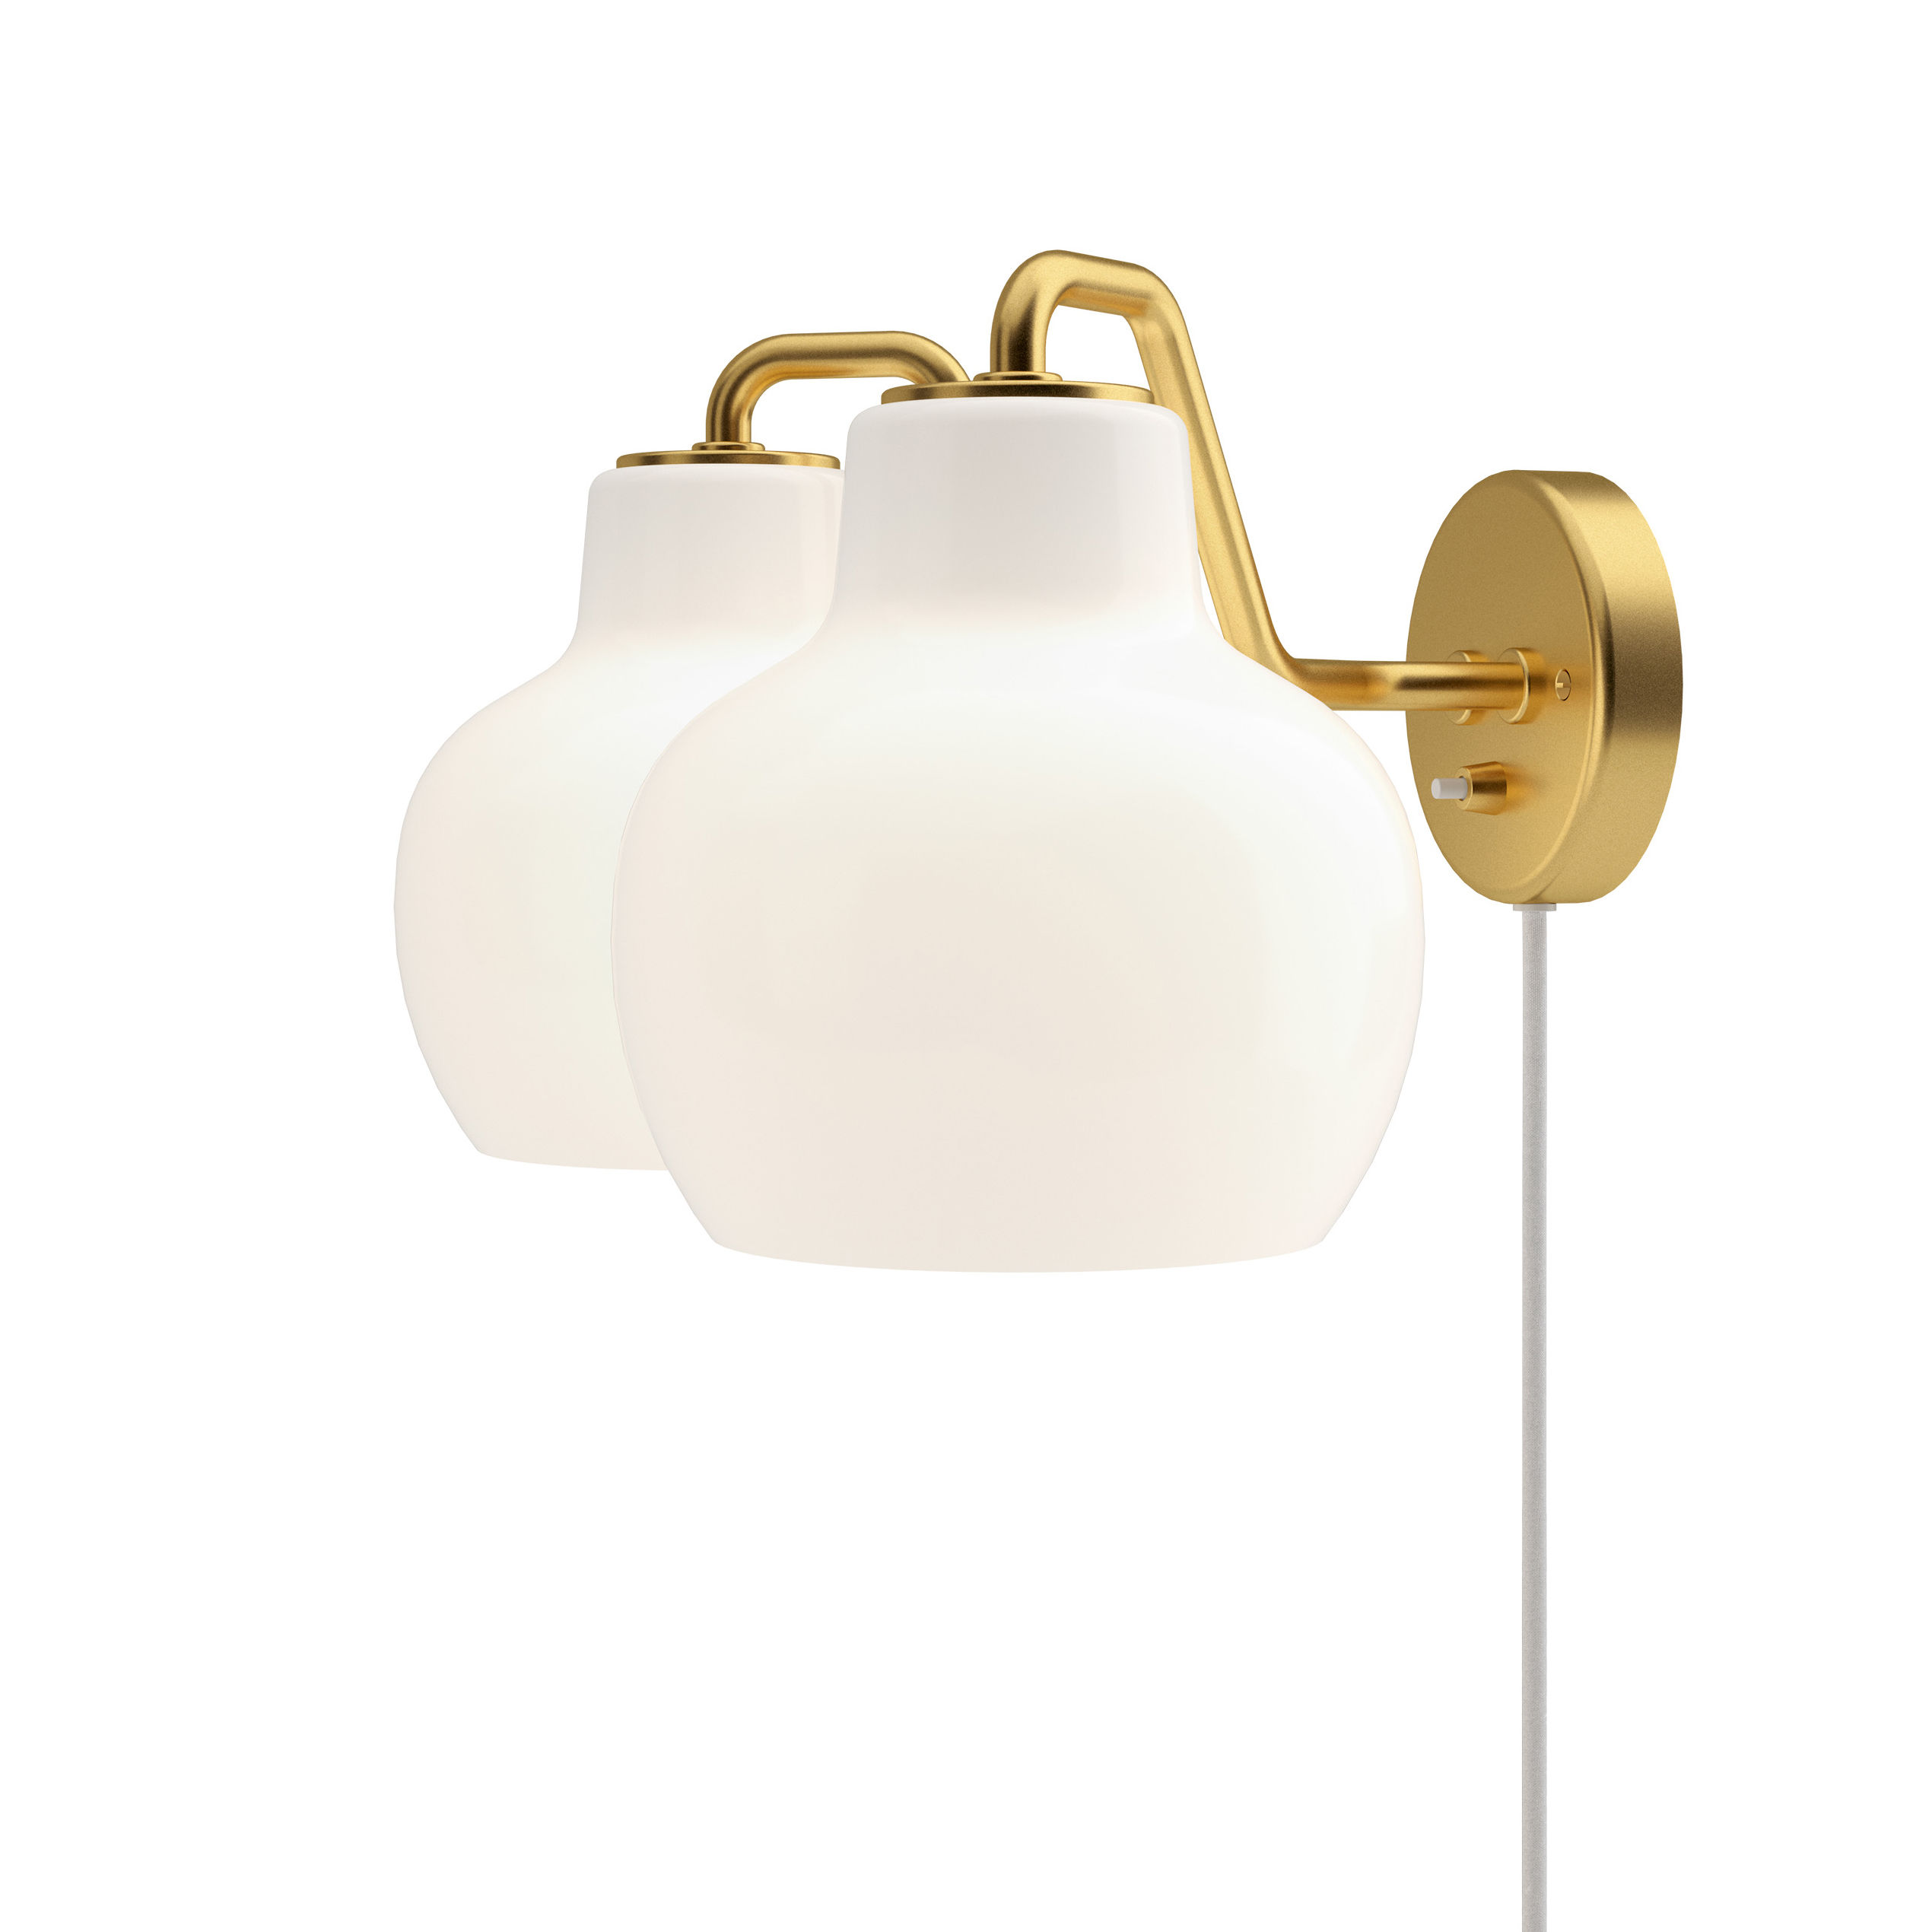 Lighting - Wall Lights - VL Ring Crown Wall light with plug - / 2 lampshades by Louis Poulsen - White / Brass - Brass, Mouth blown glass